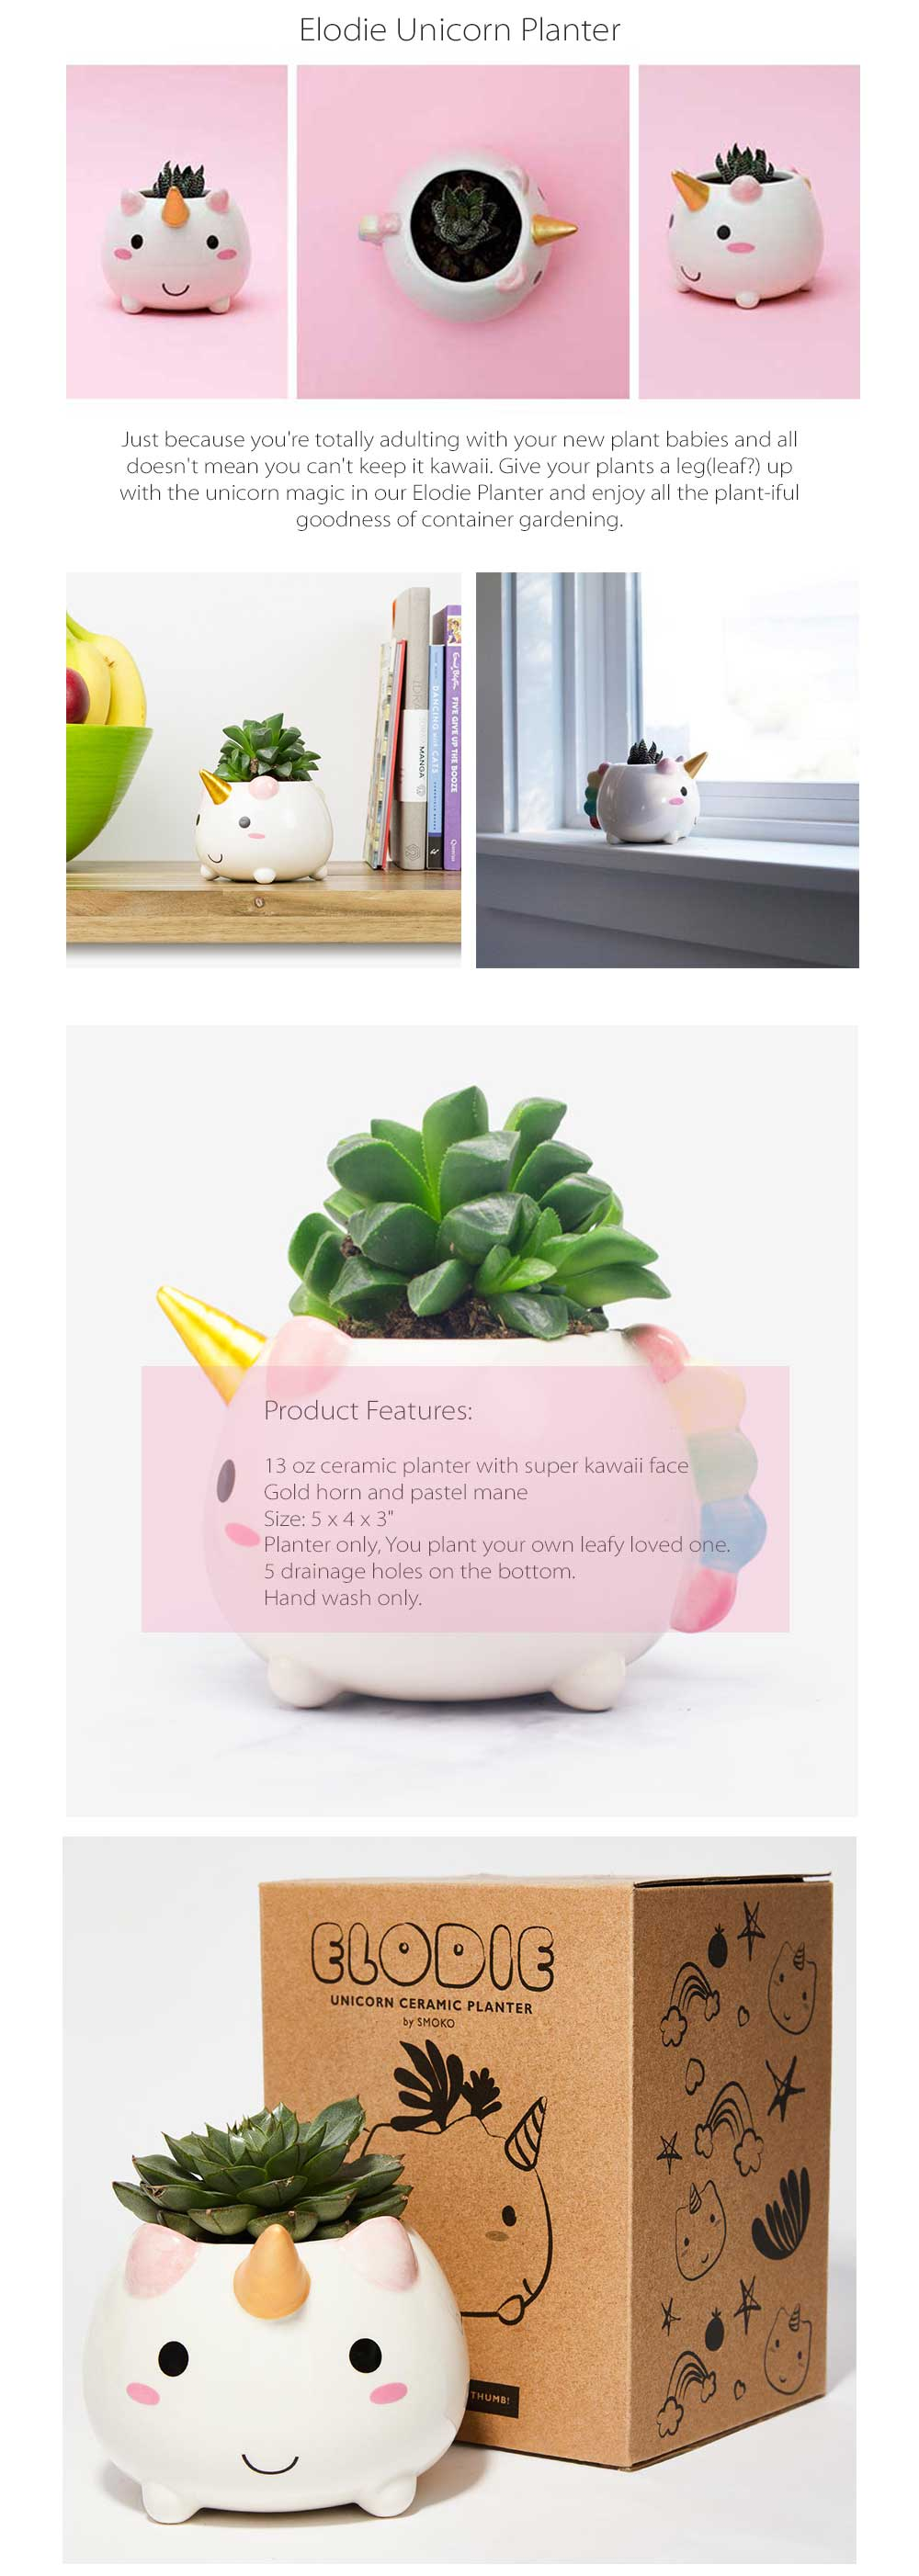 ELODIE UNICORN PLANTER Take This Cute Unicorn Home